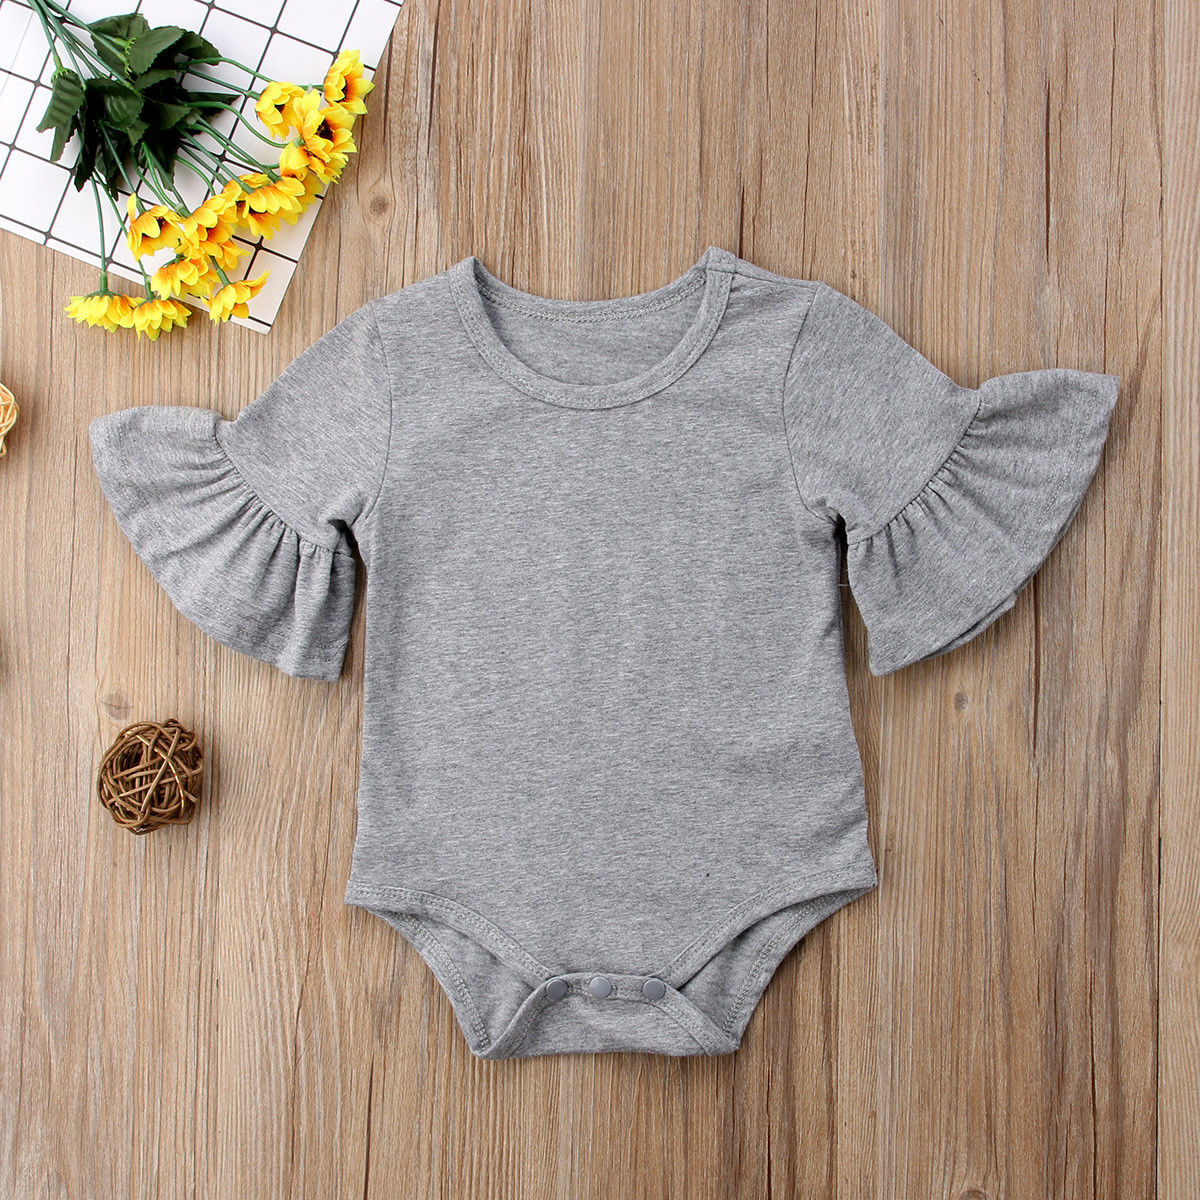 e576c789a Newborn Infant Baby Girl Clothes Plain Cotton Half Sleeve Ruffled ...